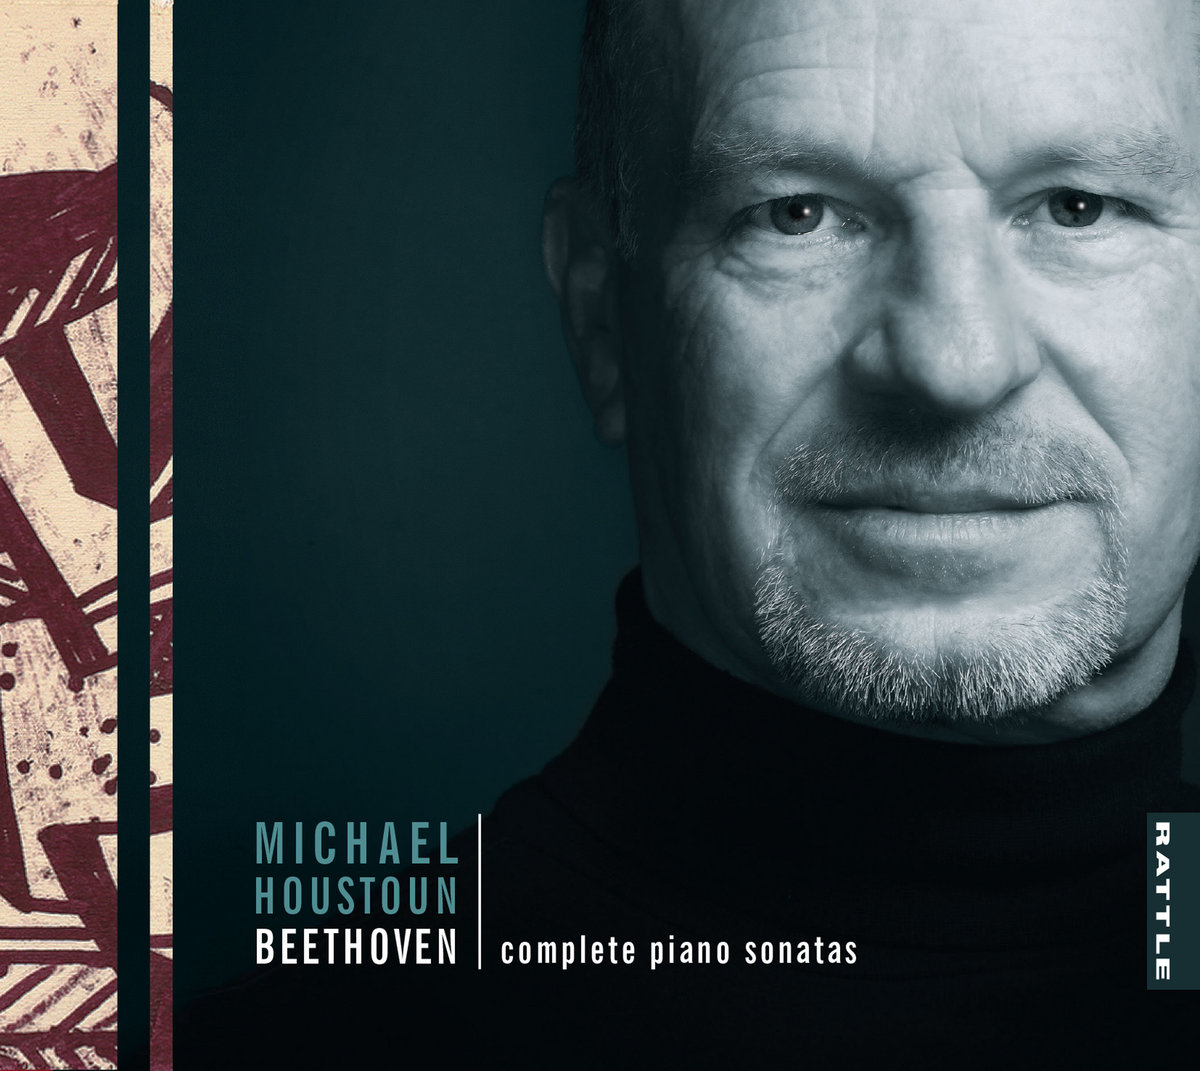 Beethoven piano sonatas download | rattle records.